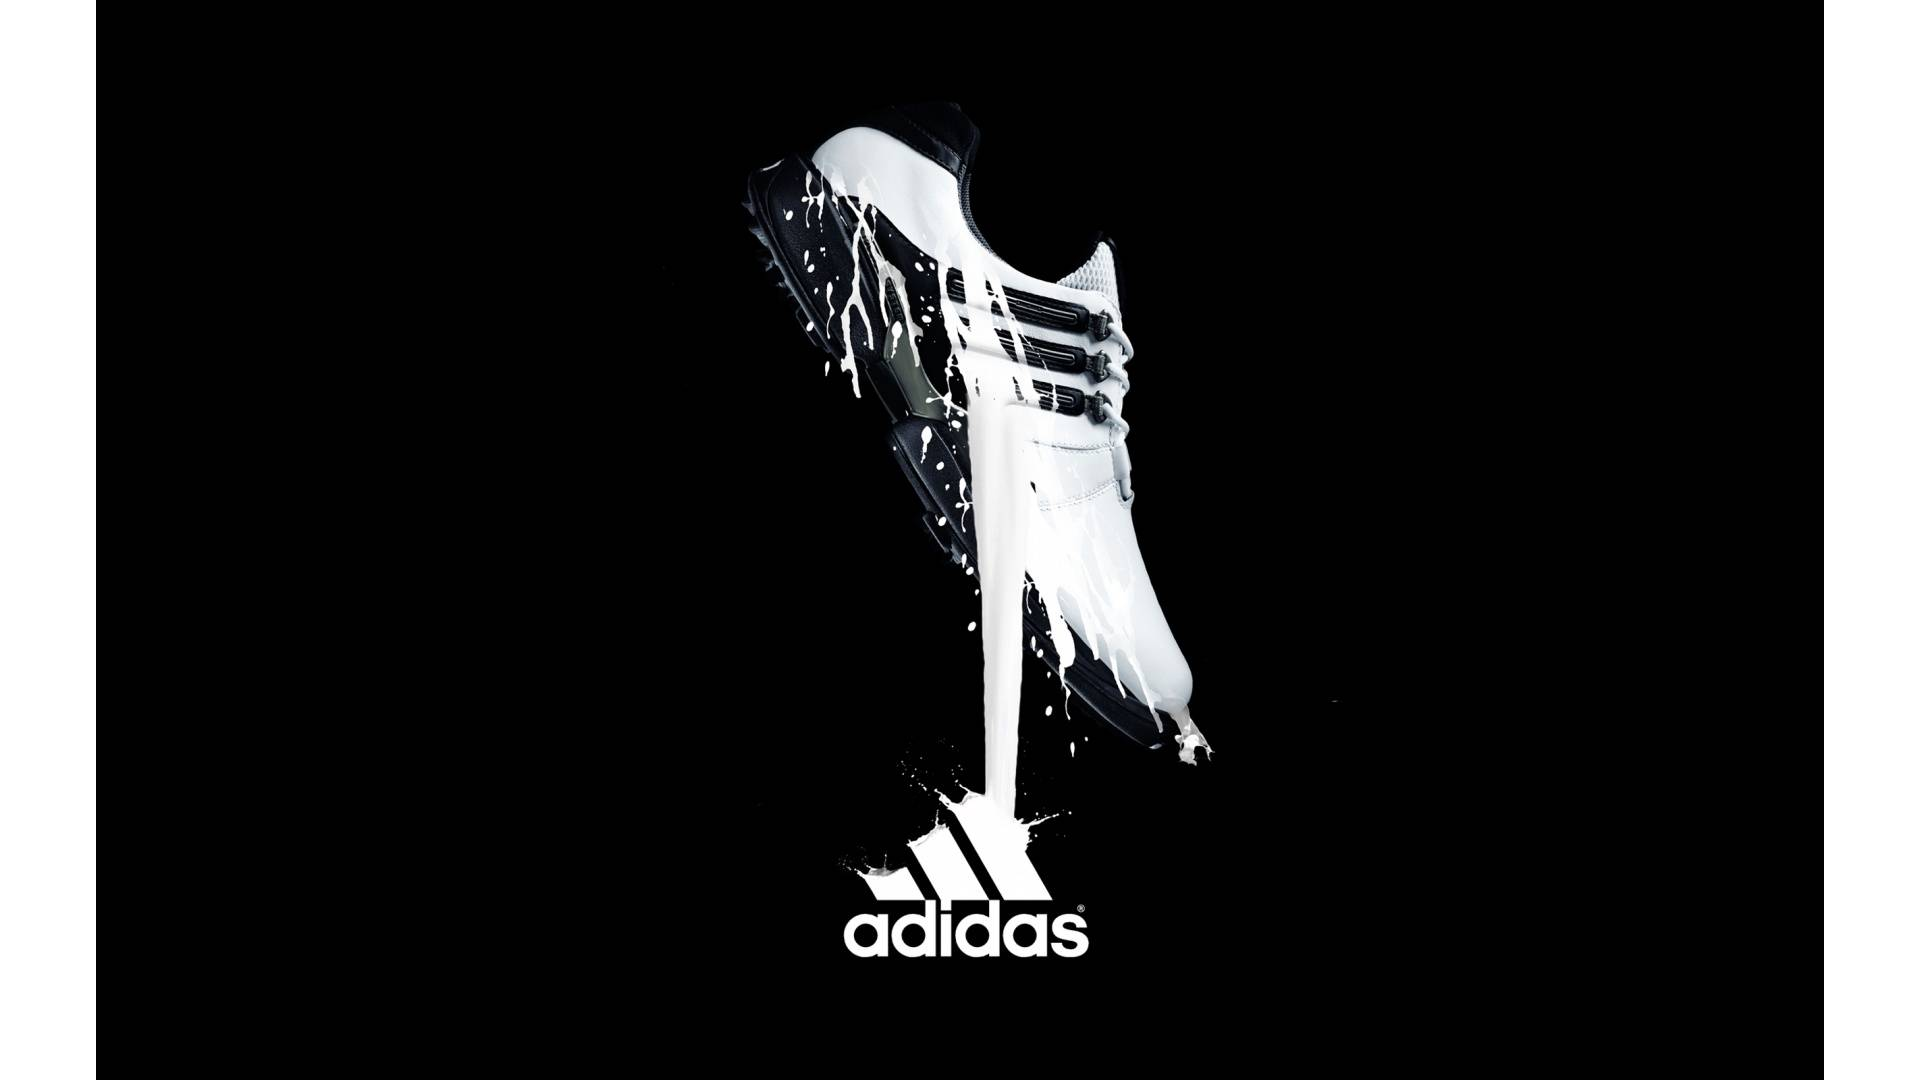 Adidas Brand Wallpapers 1920x1080